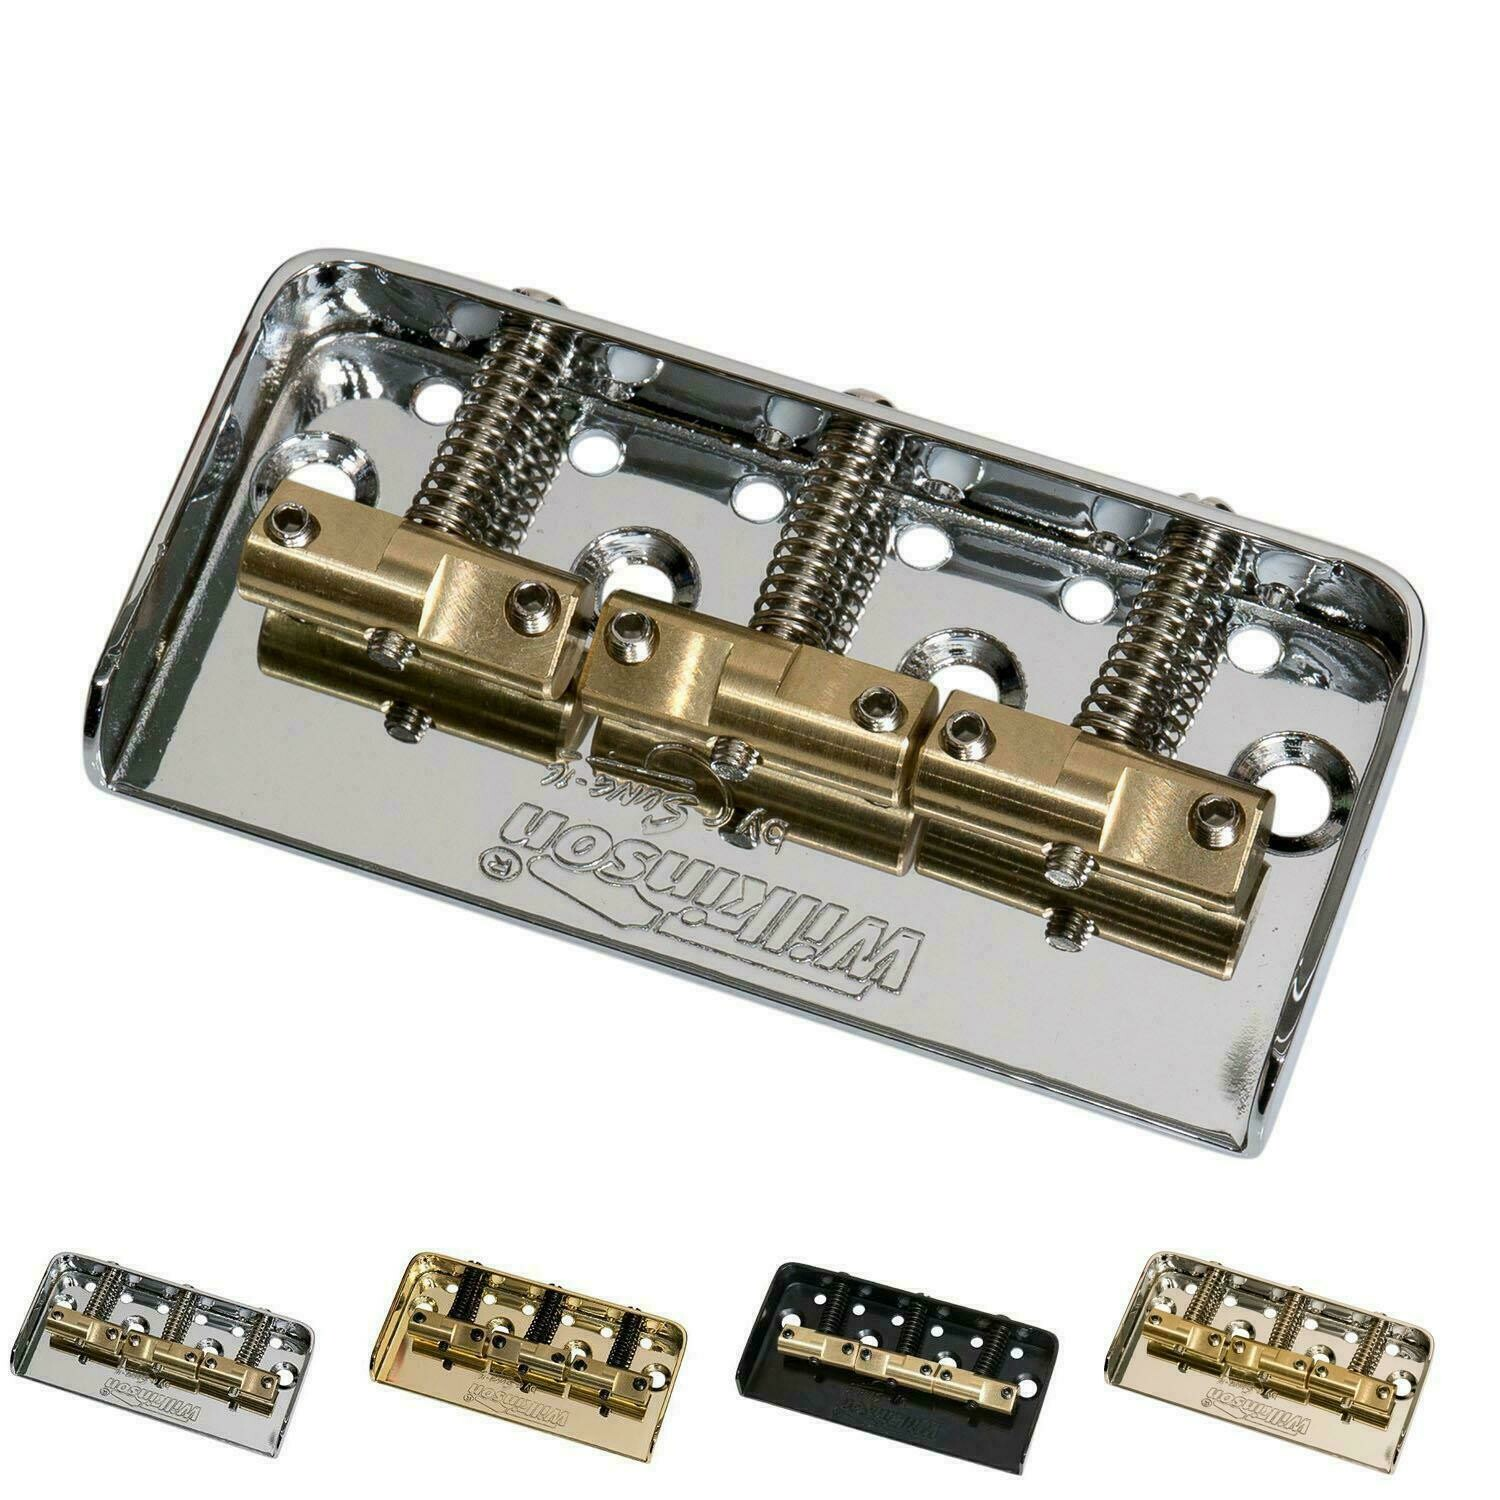 Wilkinson WTBS Short Telecaster Guitar Bridge w/ Compensated Brass Saddles